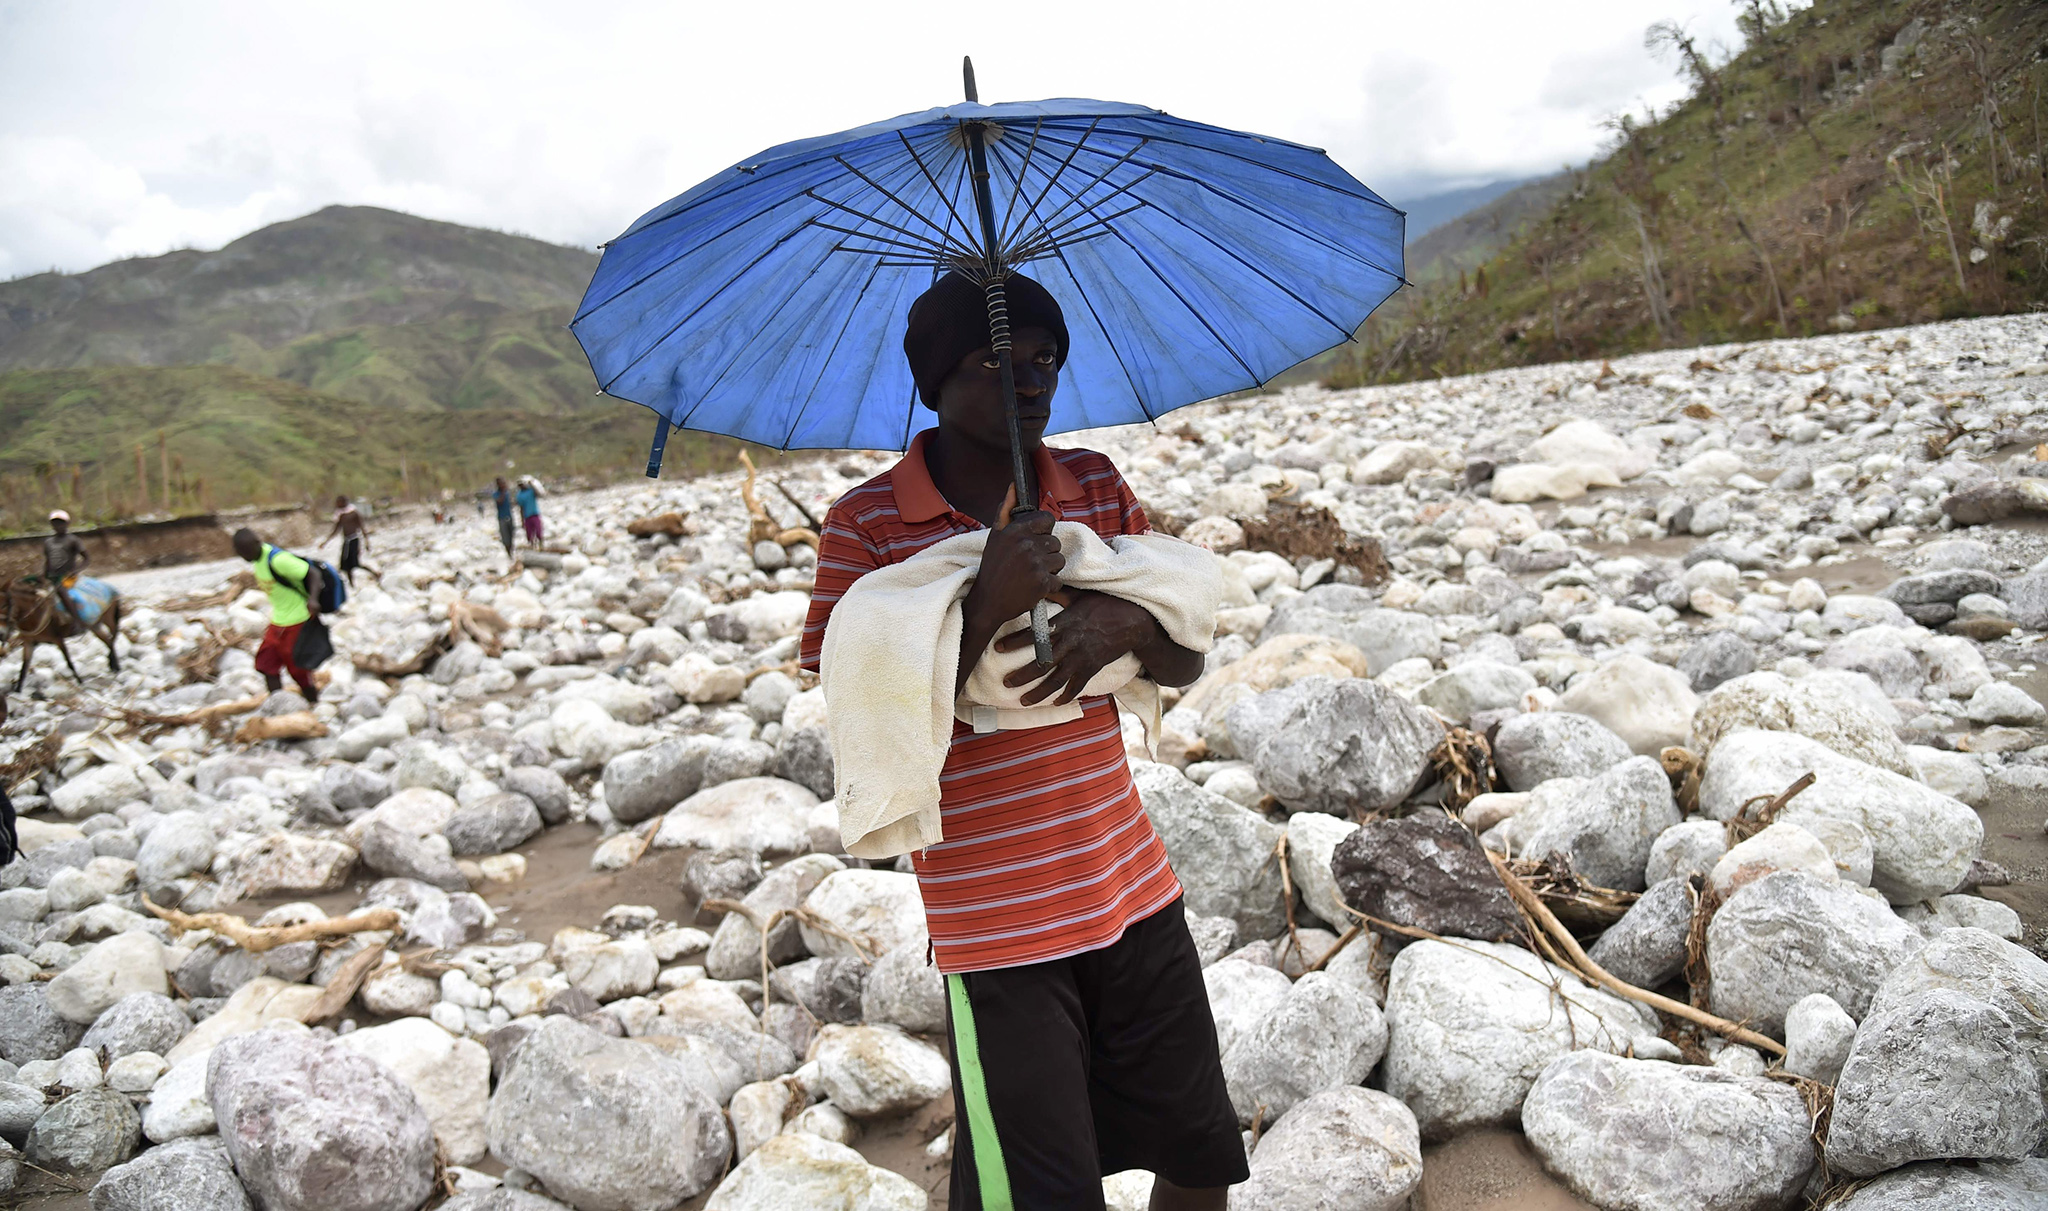 TOPSHOT - A man carries his baby on a trail in the middle of the river that passes near the village of Randelle, in the commune of Chardonniere, in the south west of Haiti, on October 19, 2016. The road leading to Randelle and other villages on the mountains was cut off after the passage of Hurricane Matthew. / AFP PHOTO / HECTOR RETAMALHECTOR RETAMAL/AFP/Getty Images